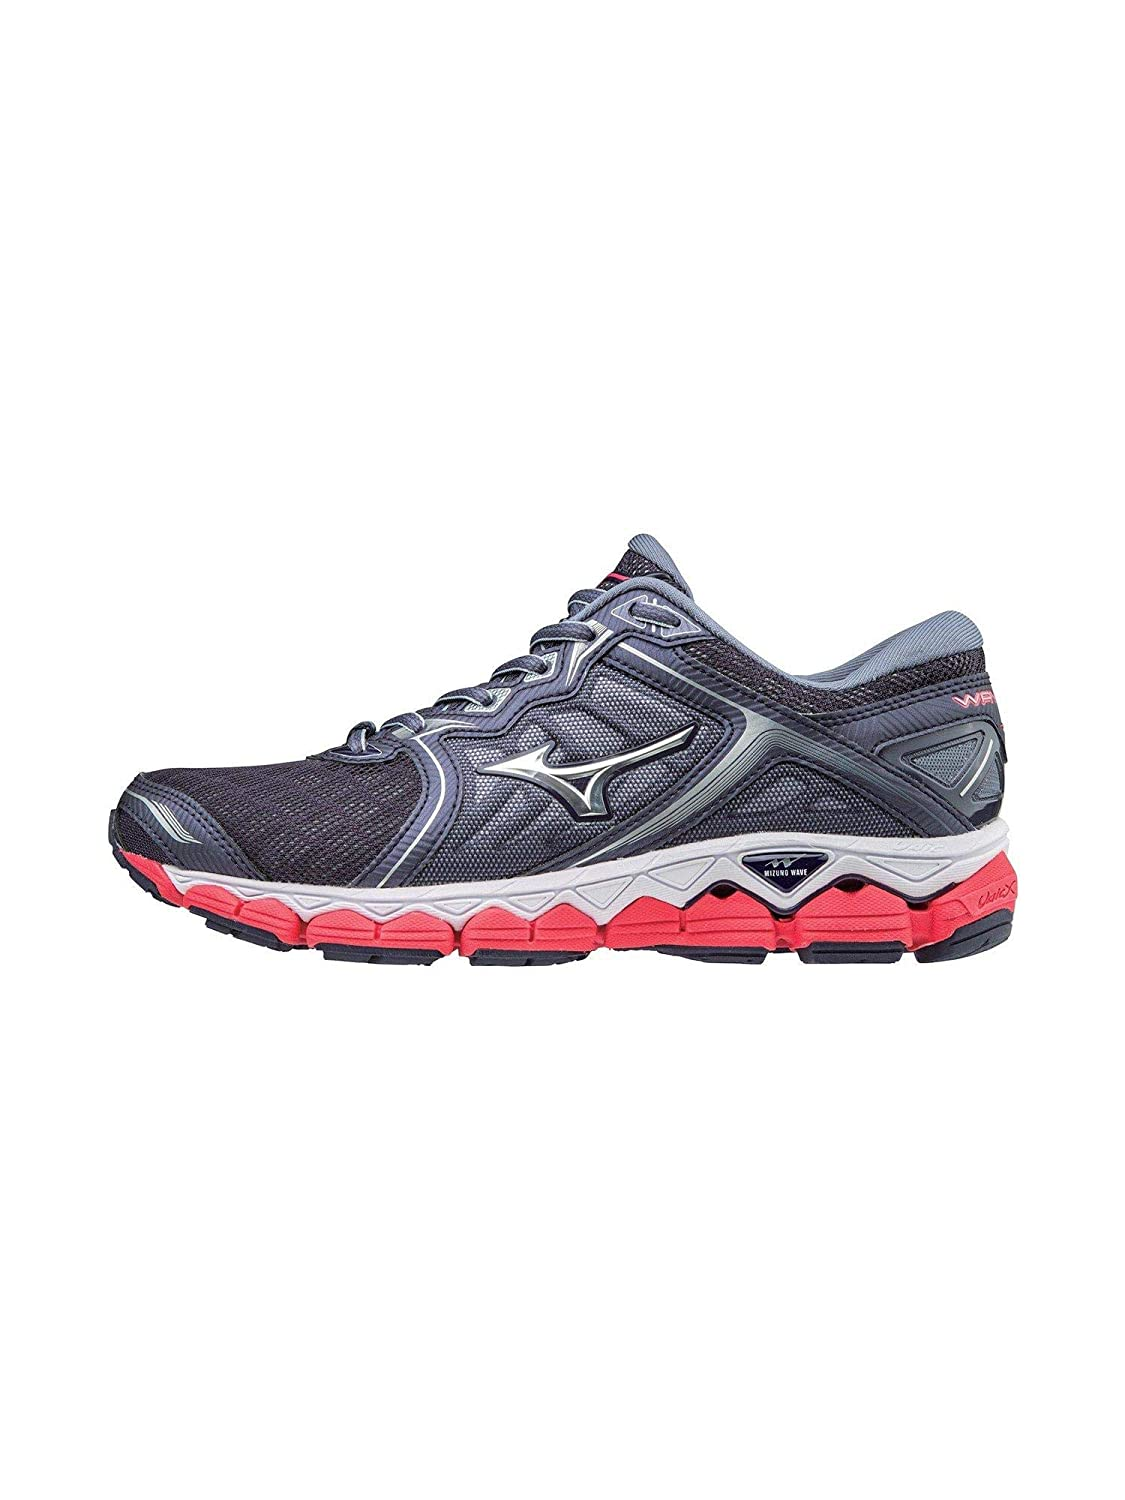 mizuno shoes size table inches us